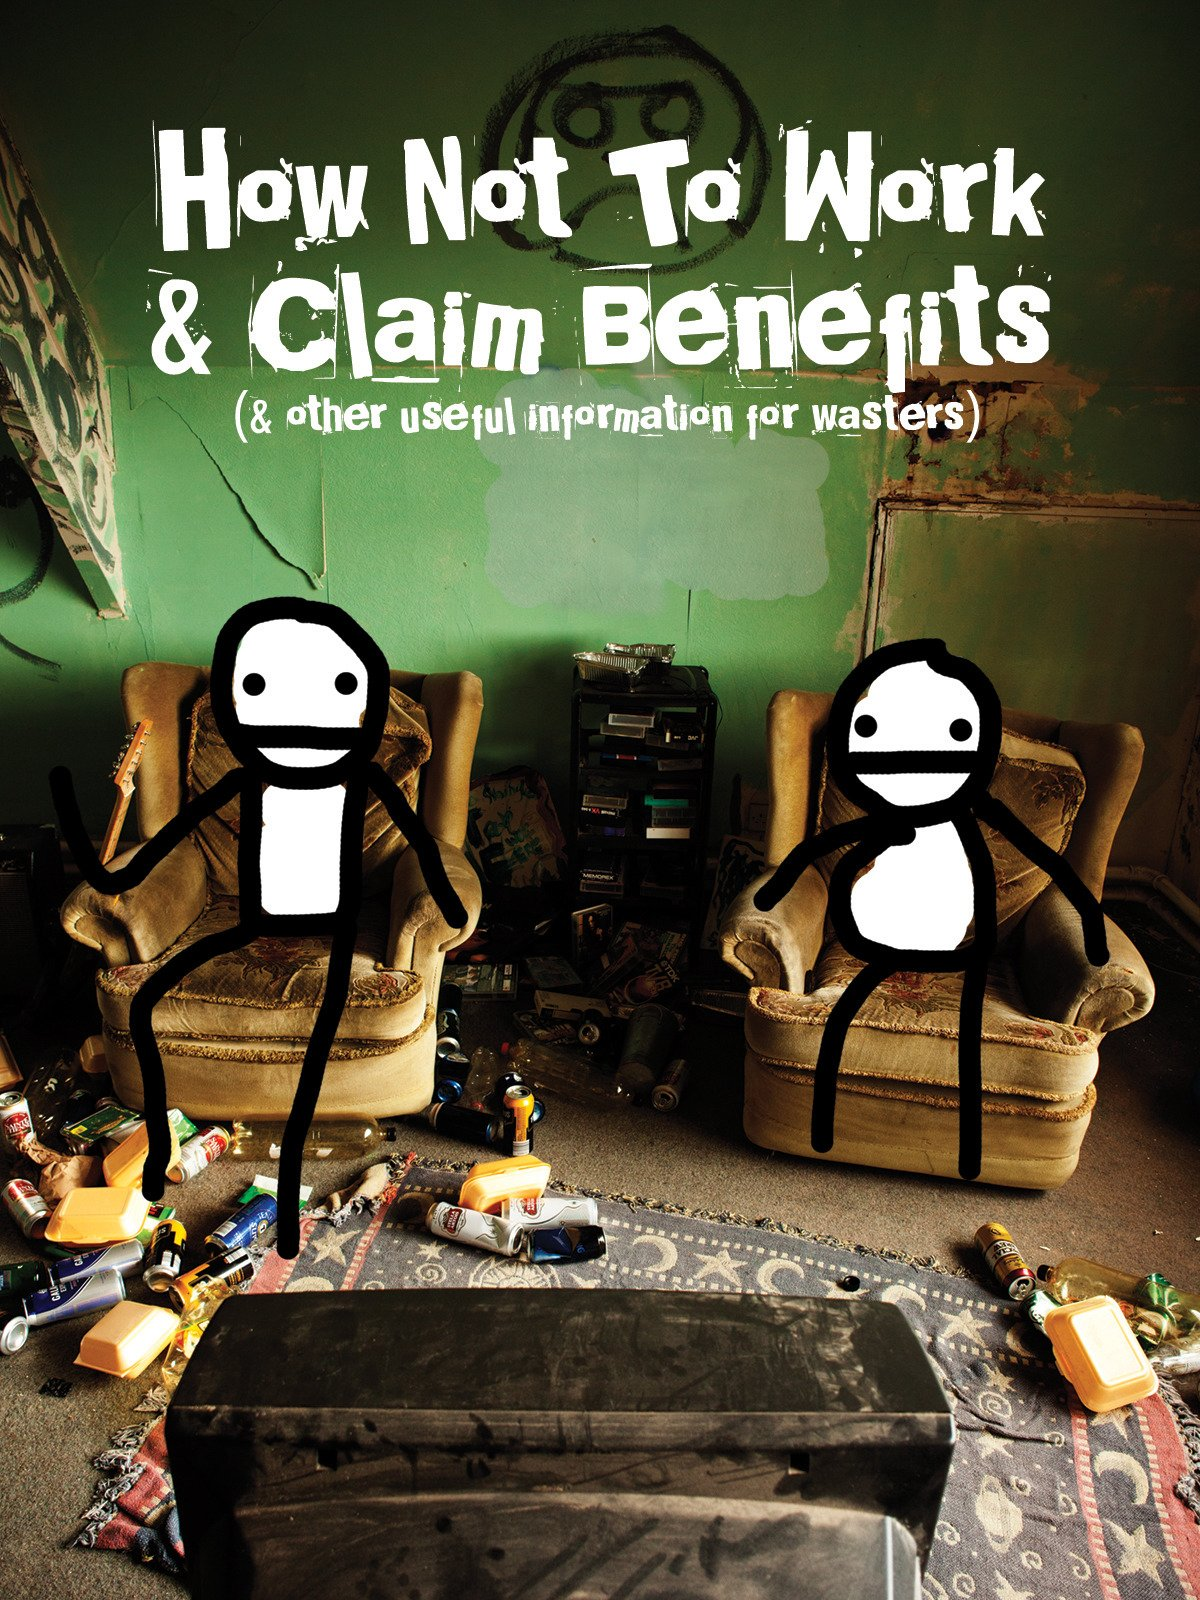 How Not to Work & Claim Benefits (and Other Useful Information for Wasters)